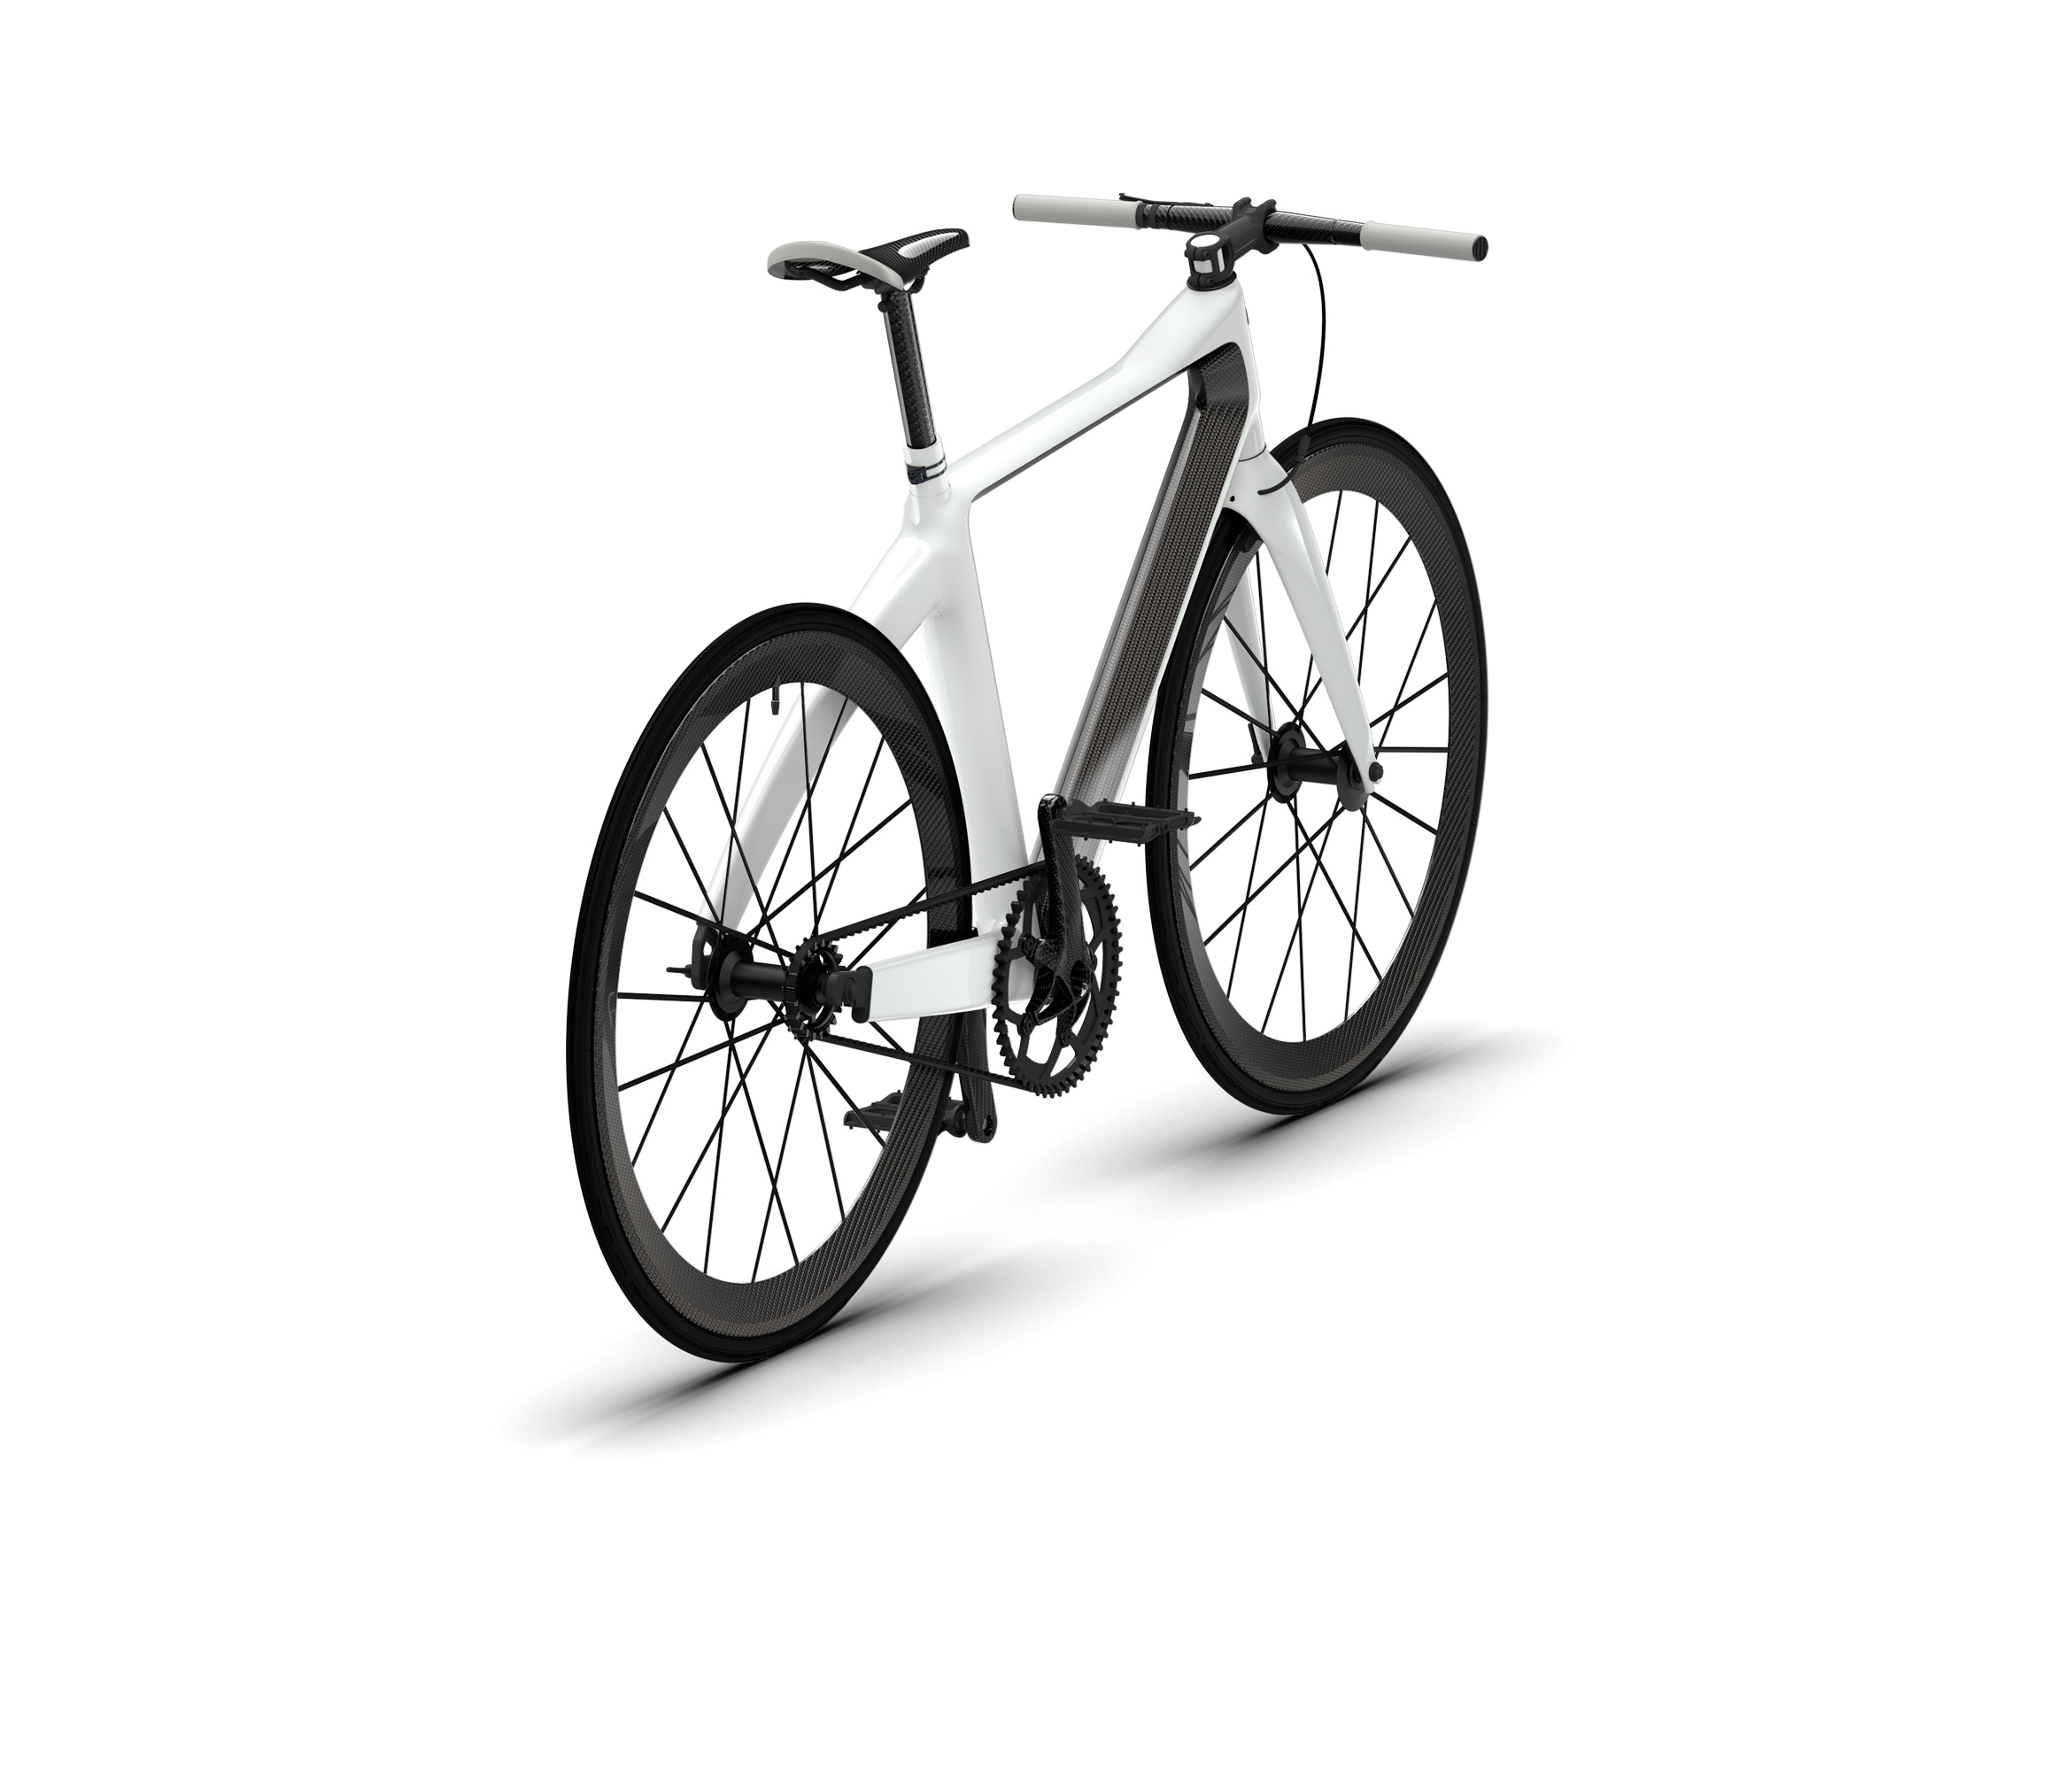 PG Bugatti bicycle (11)